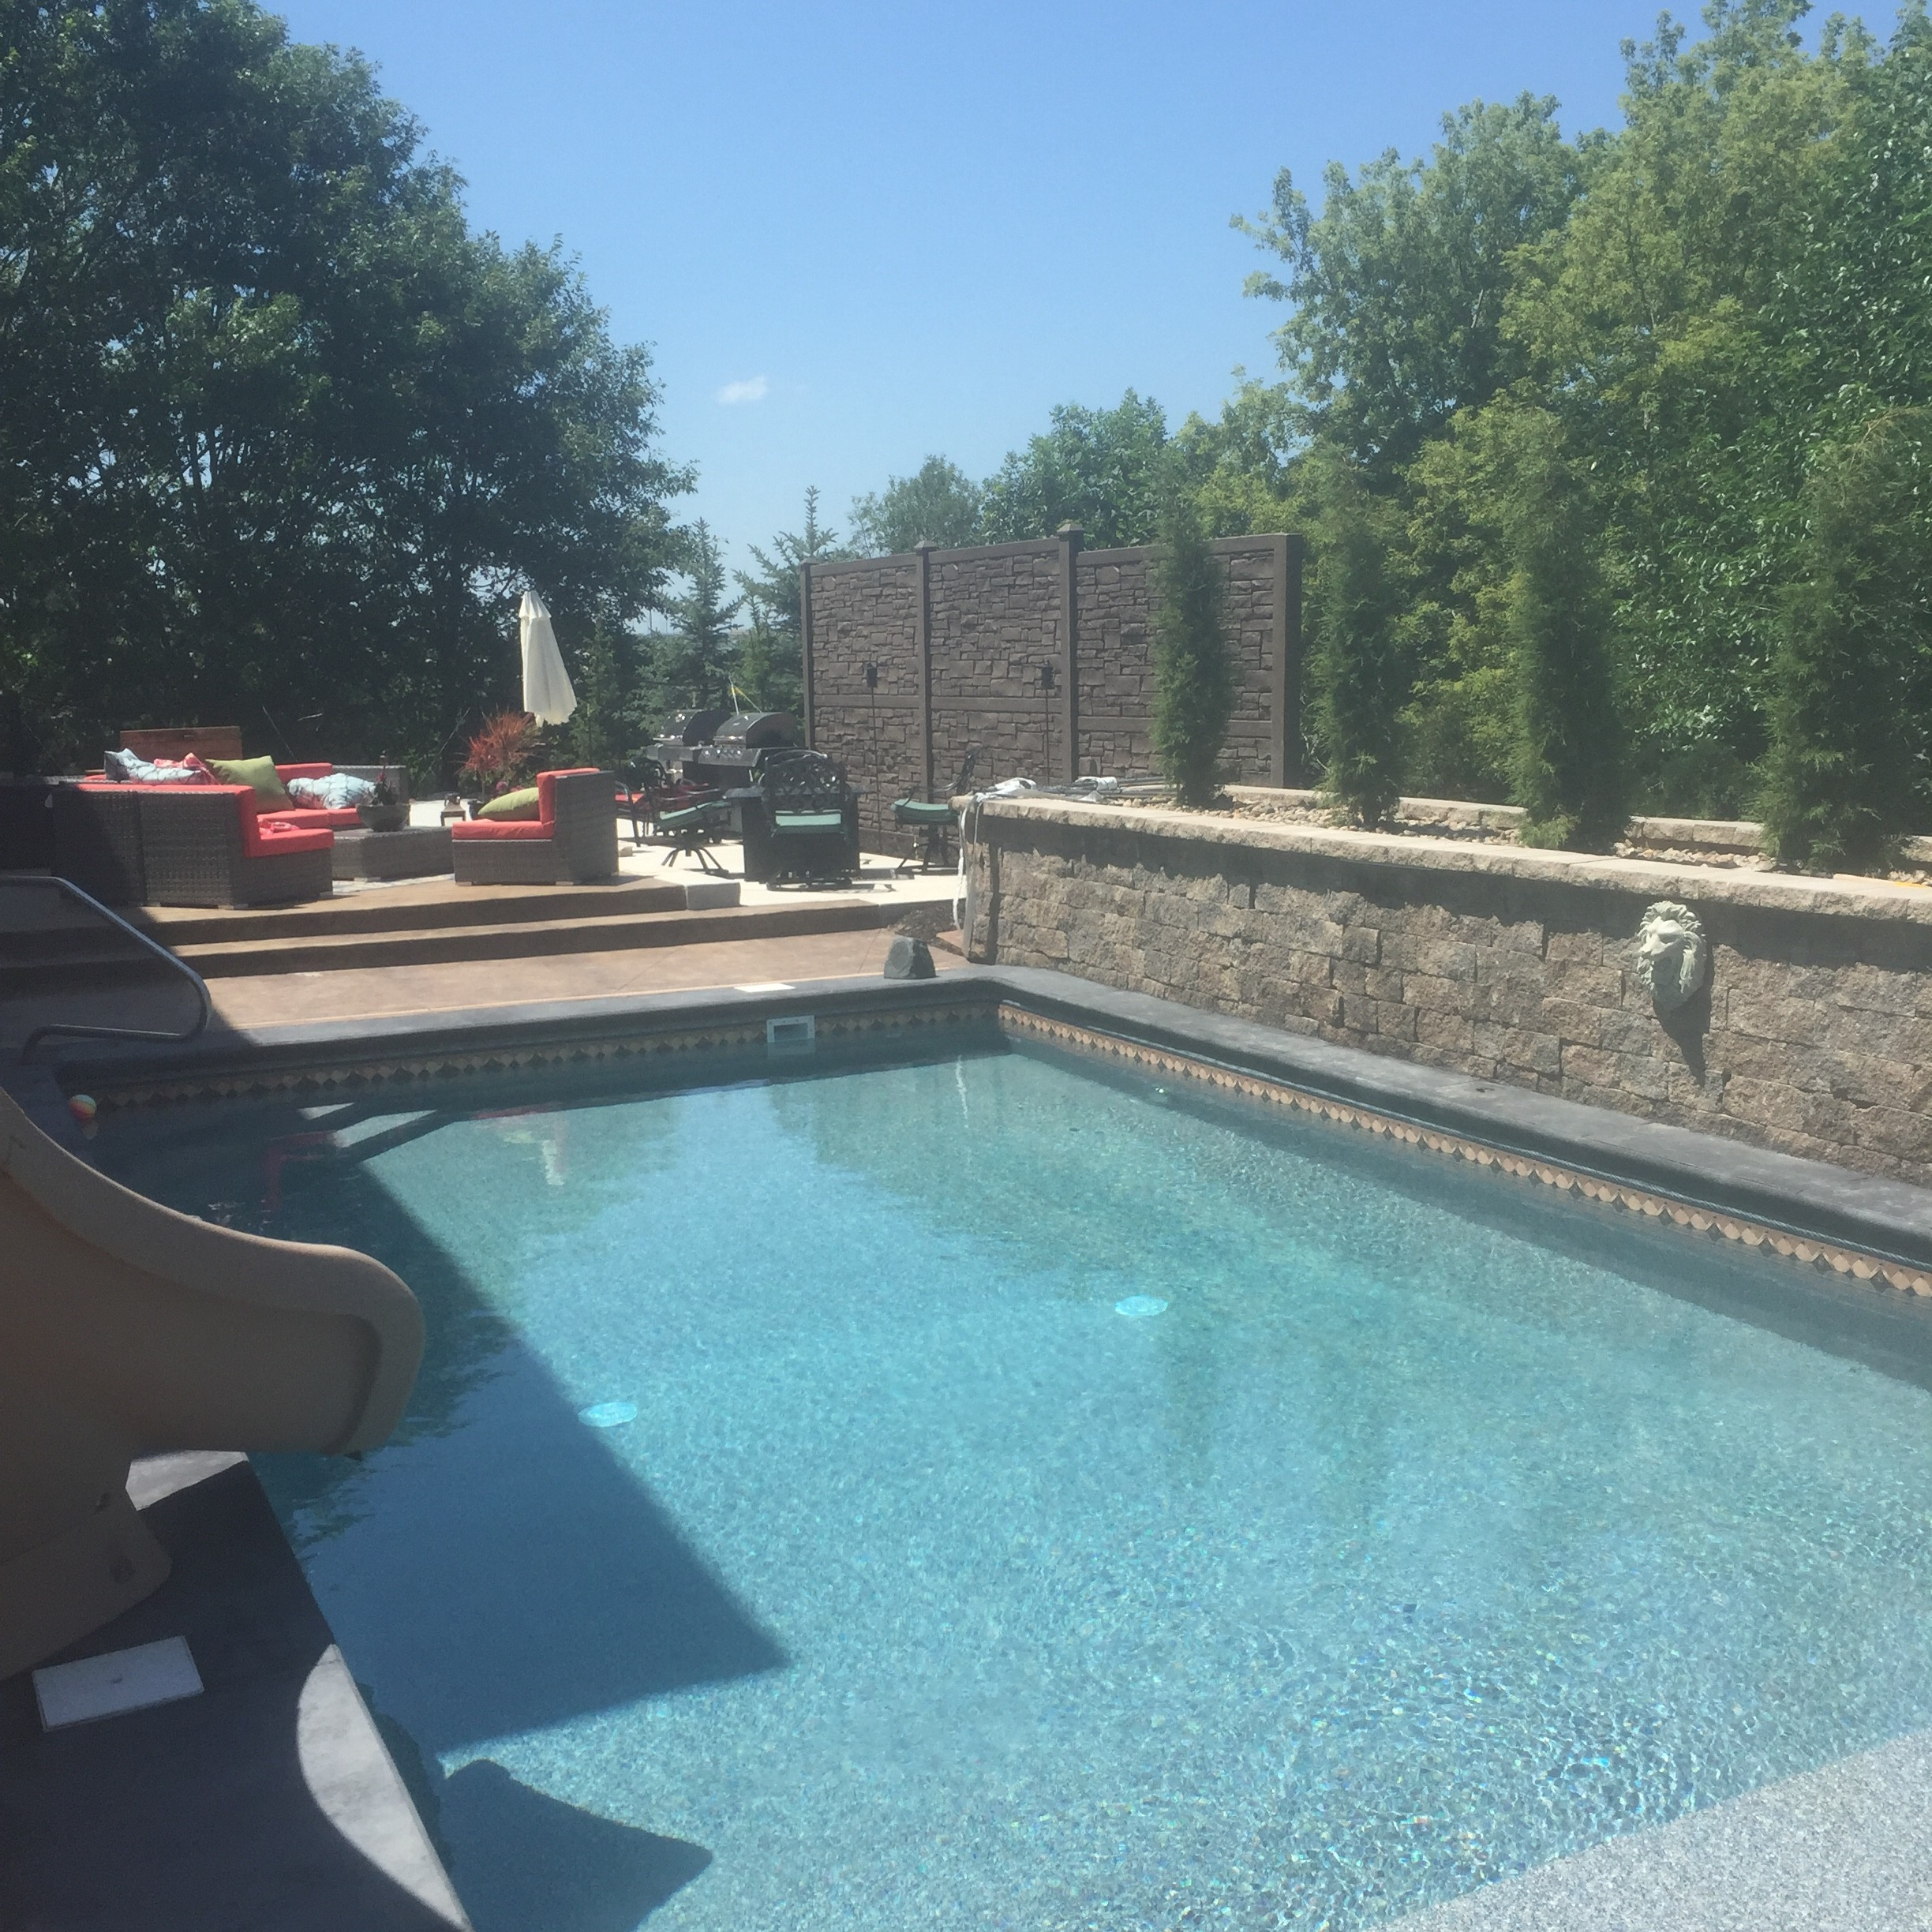 omaha pool design renovations builder artisan pools ForPool Design Omaha